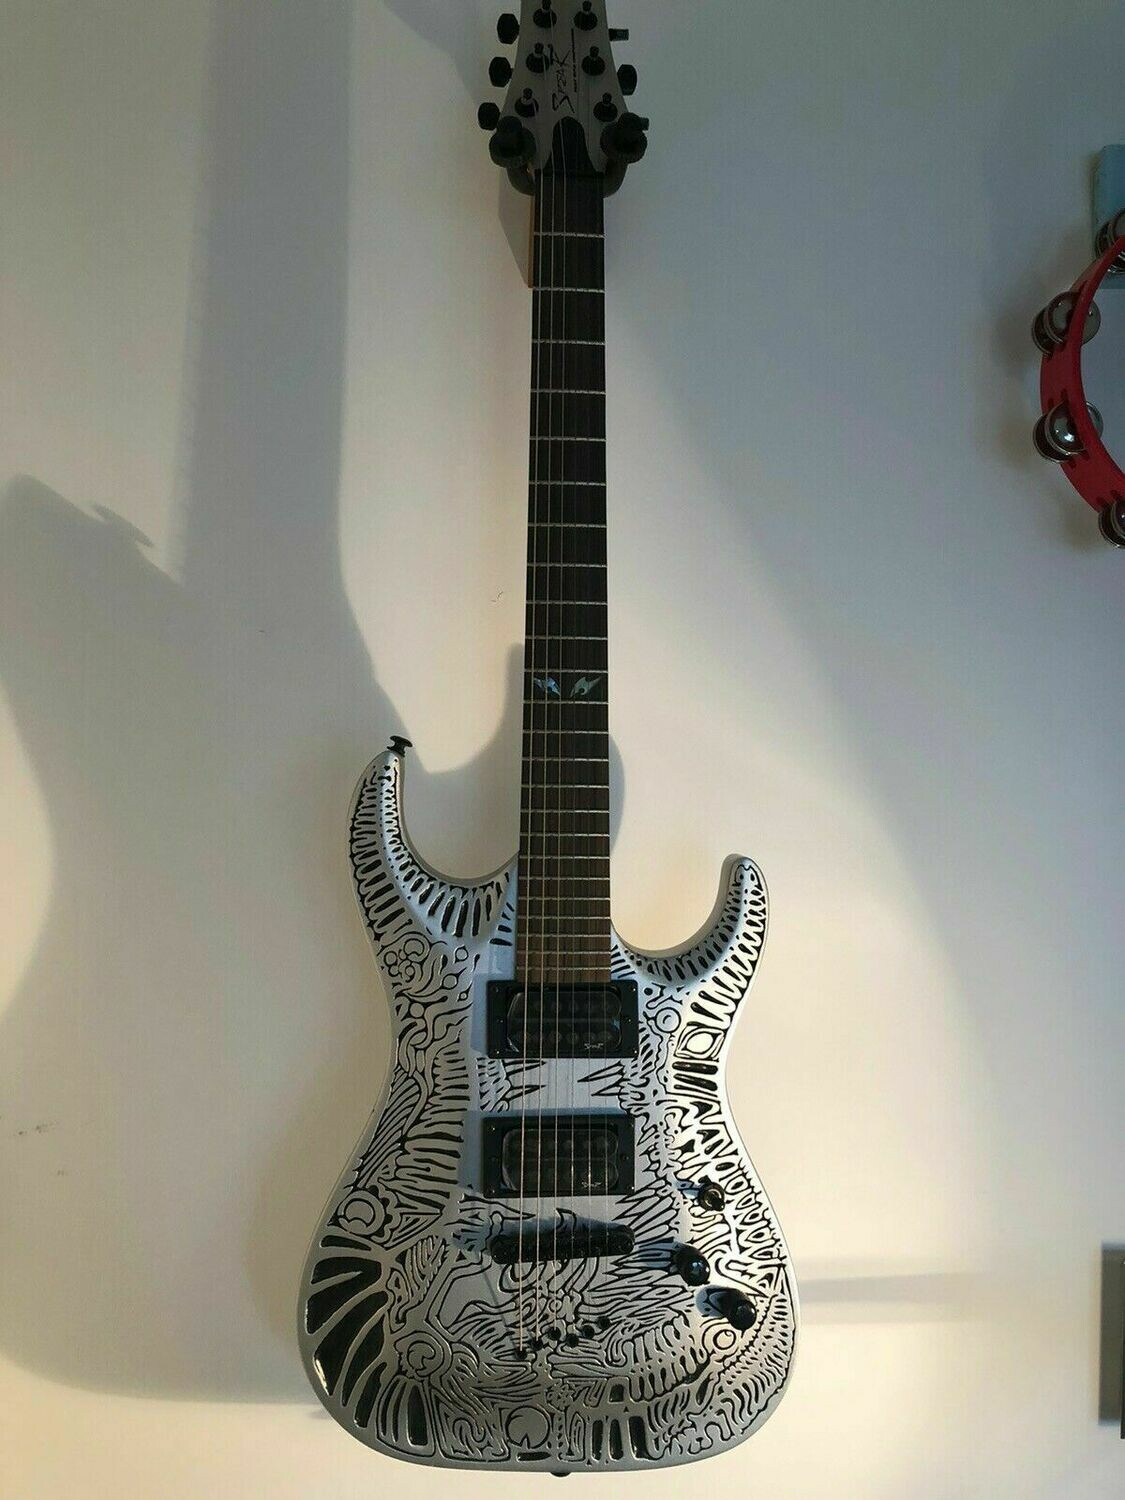 Spear Electric Guitar Silver Tiger TC-1 with Luthite body, embossed, stunning !